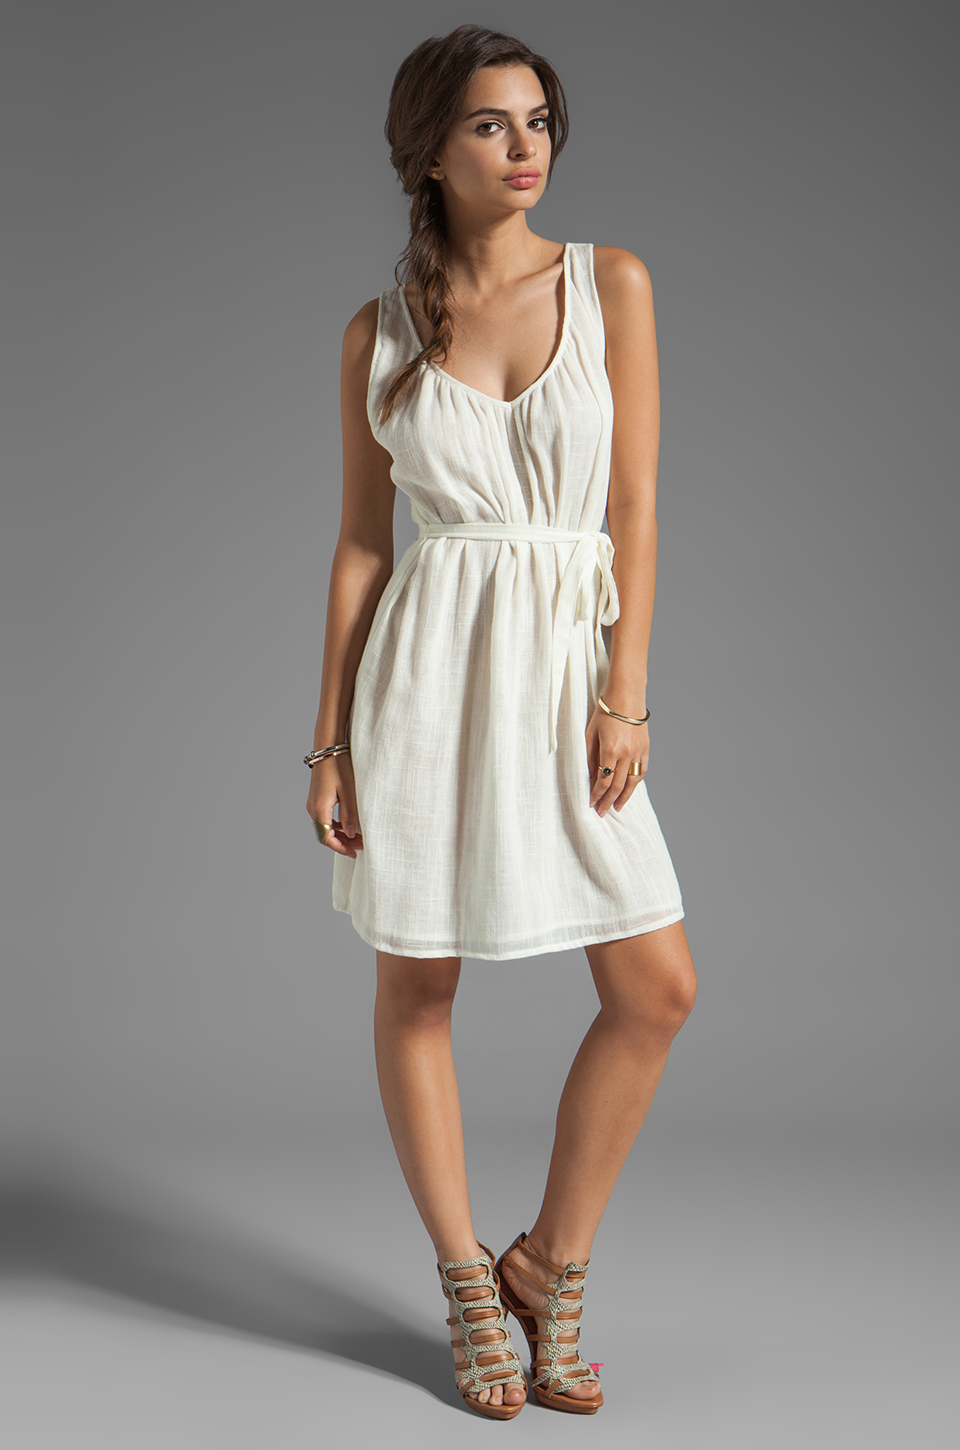 Soft Joie Langford Tank Dress in Porcelain